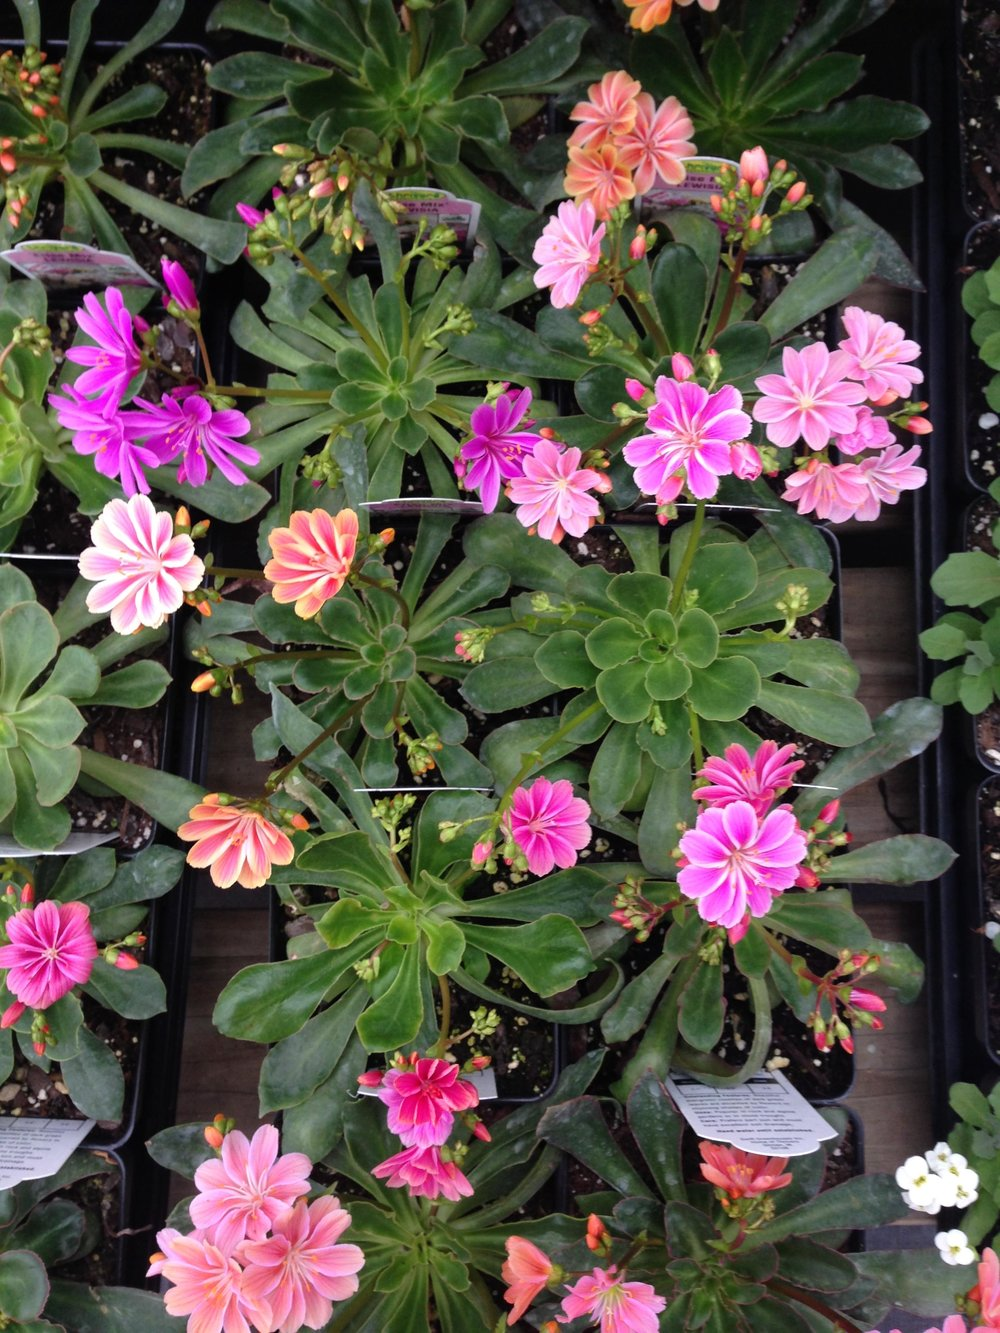 Lewisia cotyledon common name, 'Cliff Maids'